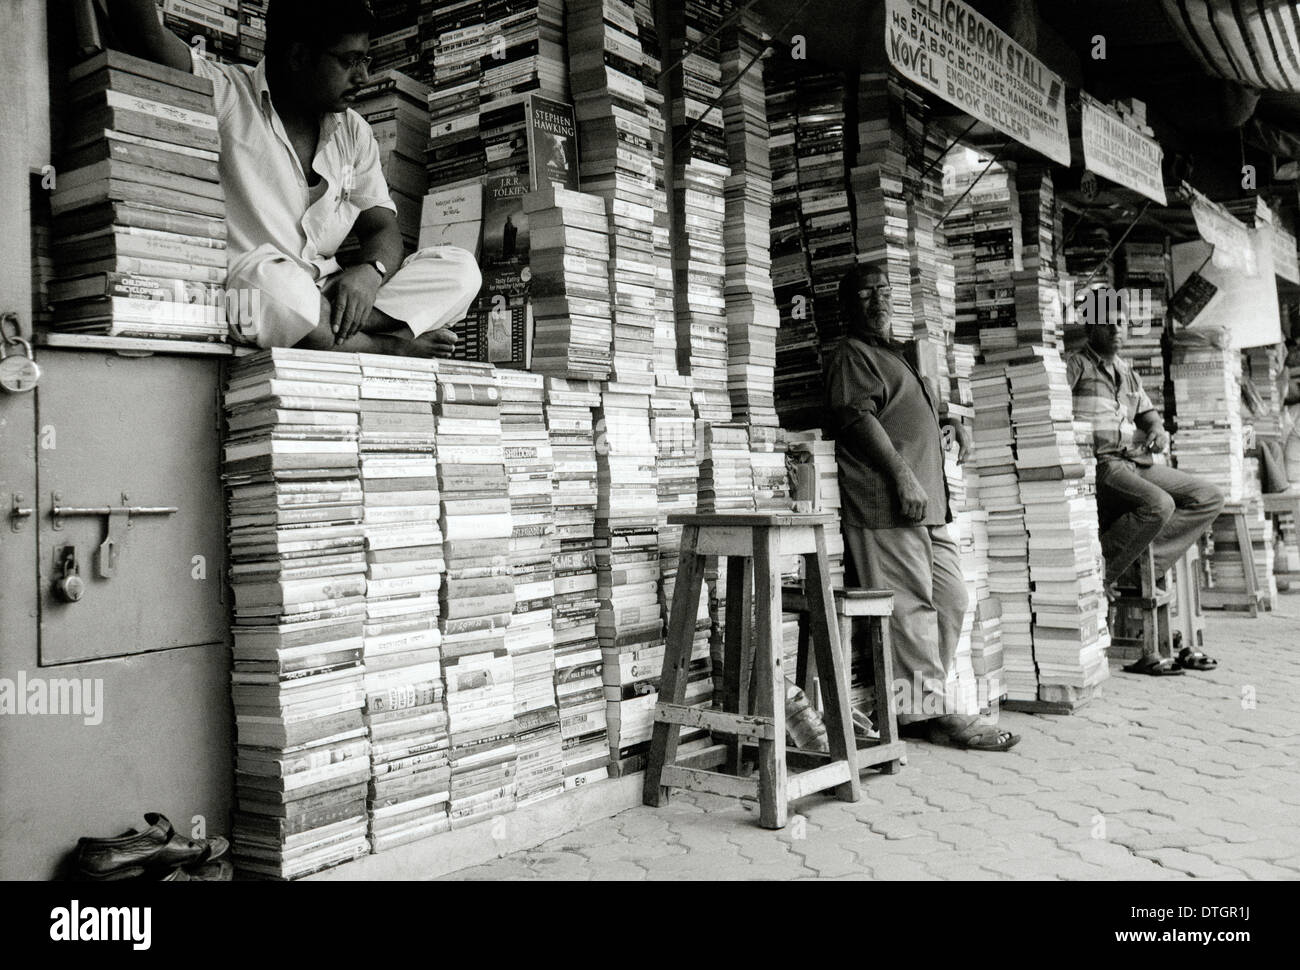 Book seller in College Street in Kolkata Calcutta in West Bengal in India in South Asia. Book Market Shop City Knowledge Sellers Intellectual Travel - Stock Image